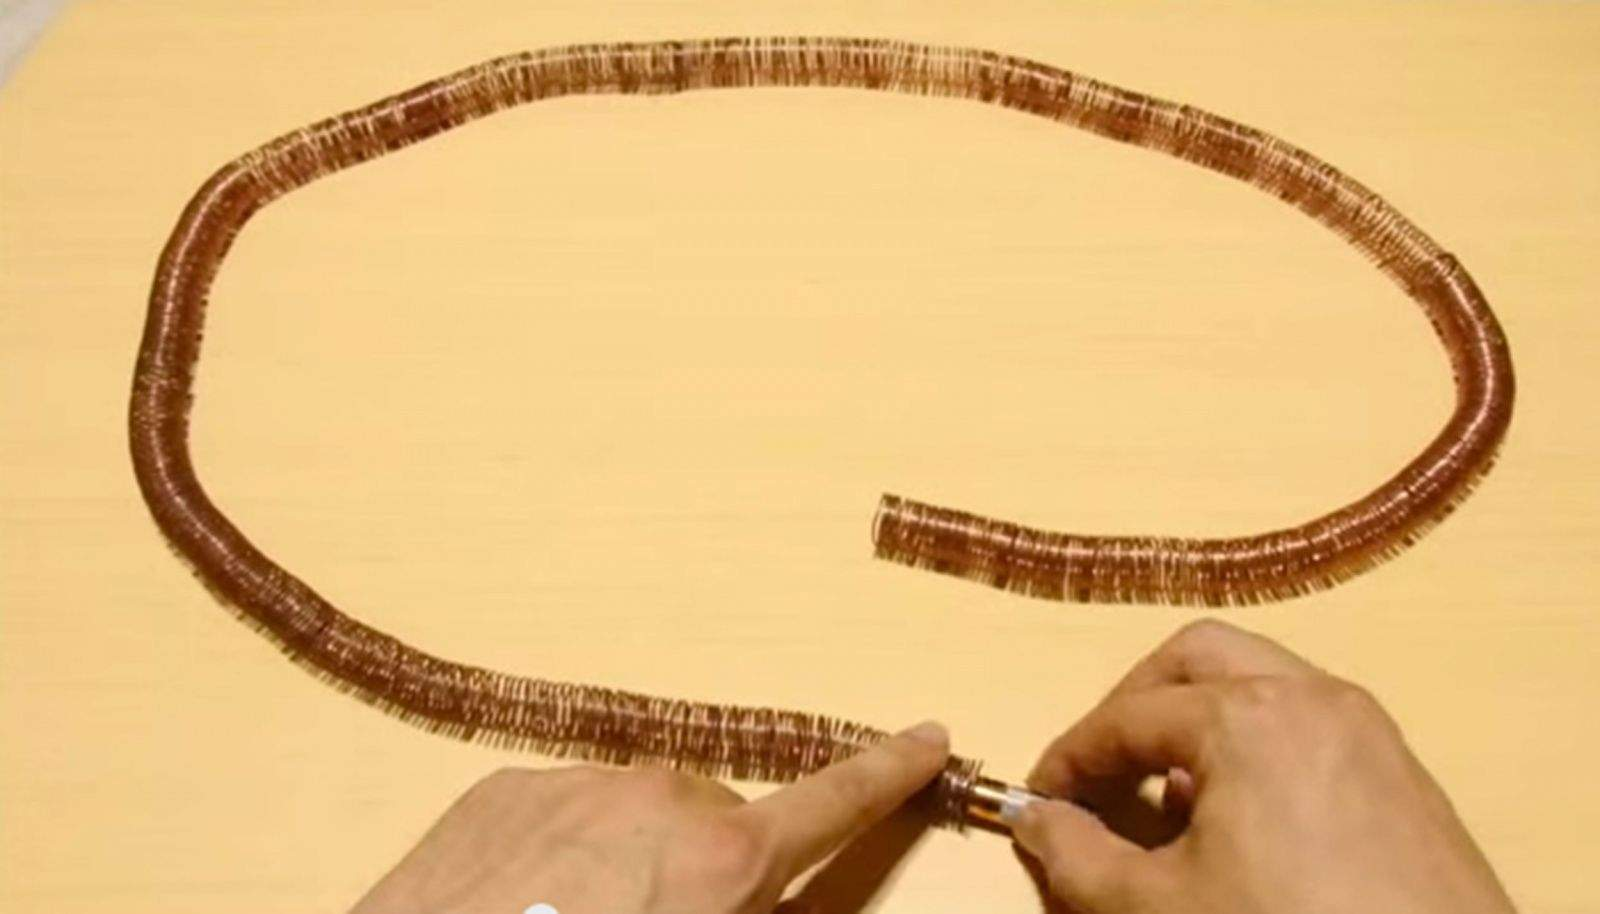 Transform copper wire, magnets and a battery into a simple electric train. Screen grab from Amazing Science YouTube video